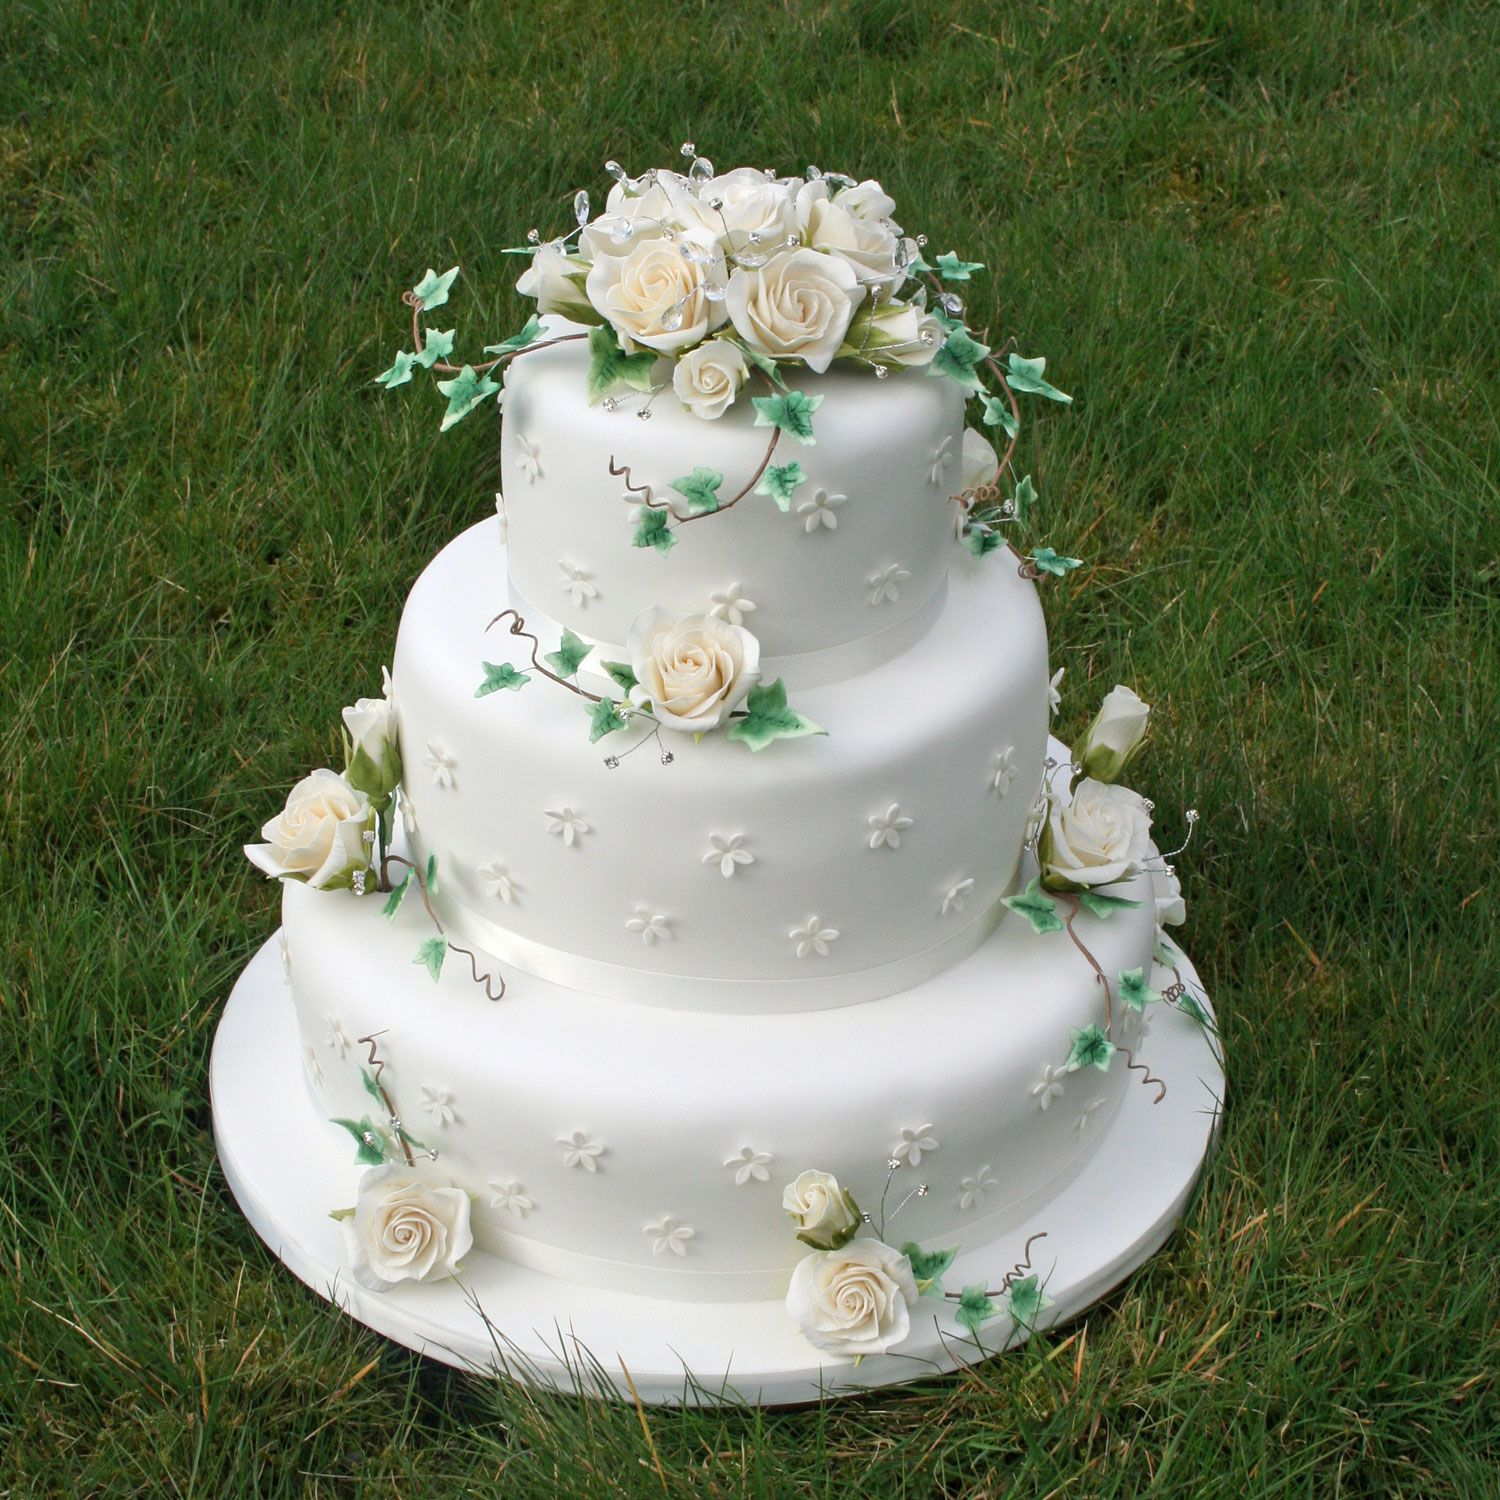 cost of a 3 tier wedding cake rainbowsugarcraft co uk weddings 12965